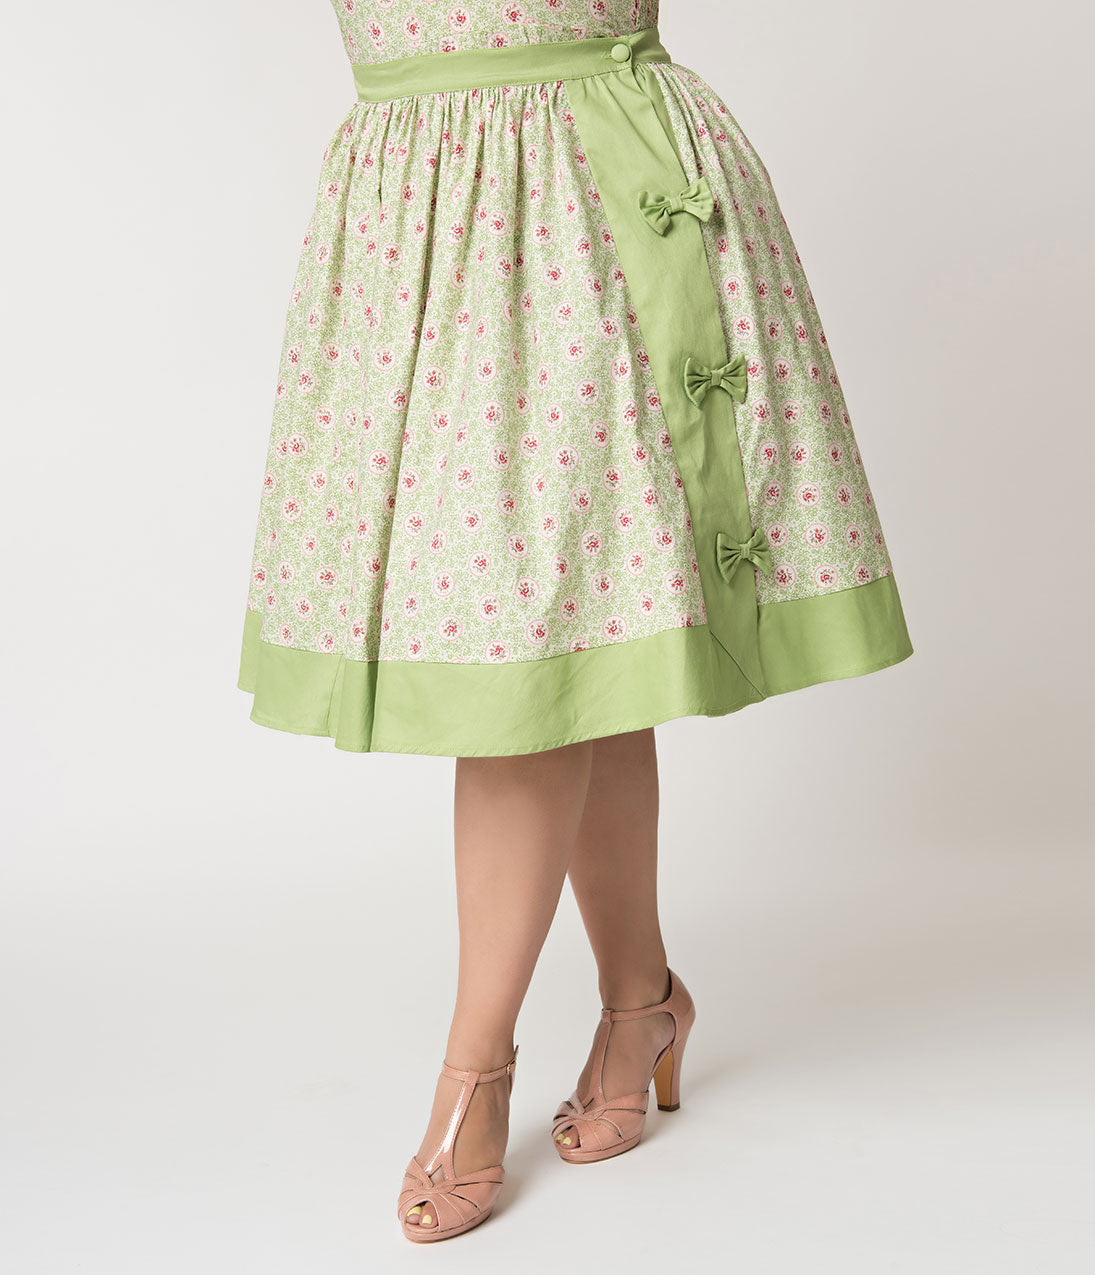 176ef051deac4d Unique Vintage Plus Size Mint Green & Polka Dot Floral Rye Swing Skirt